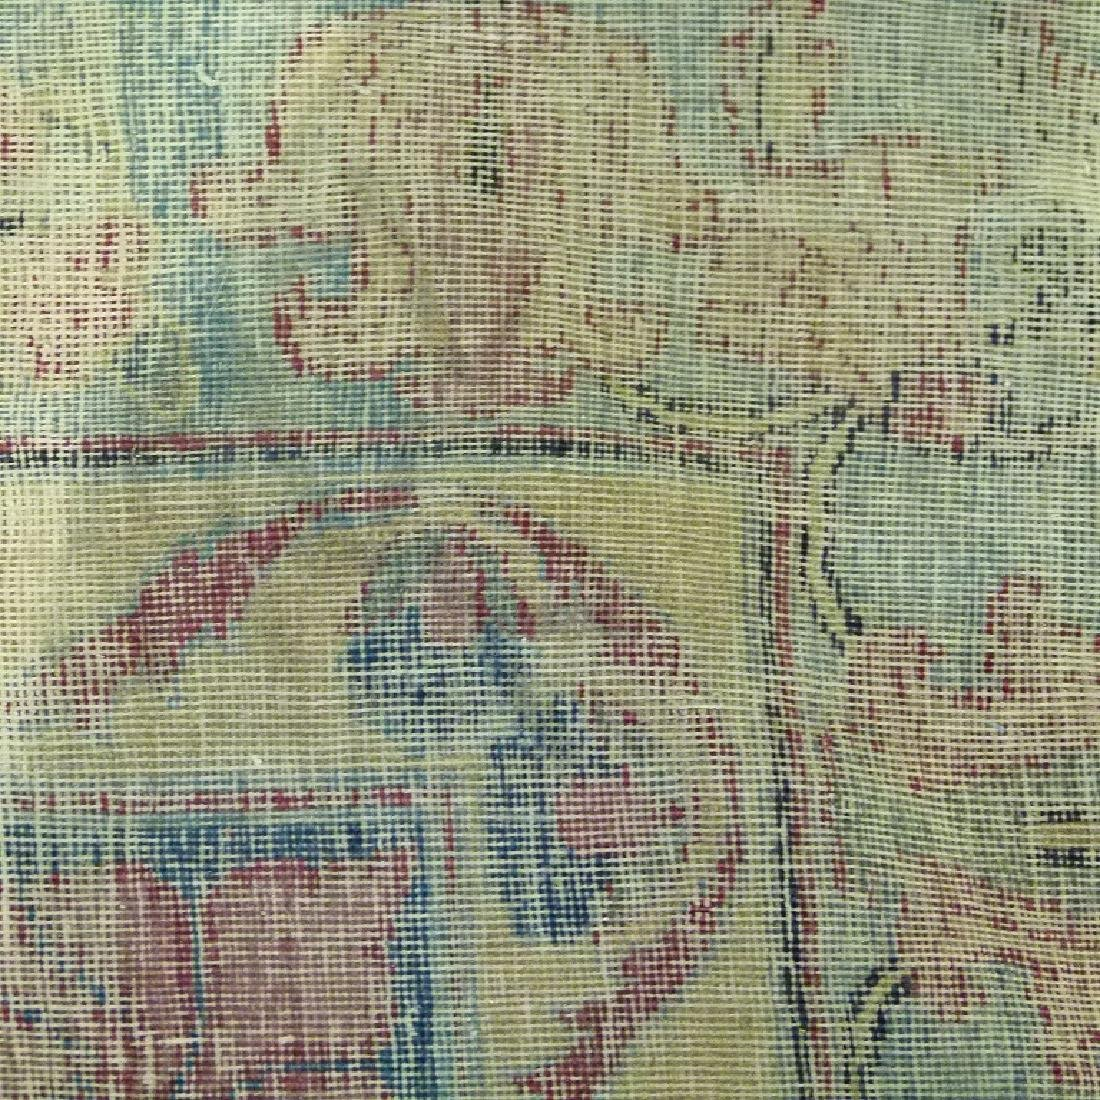 ANTIQUE SAROUK ORIENTAL CARPET (RE-SIZED) - 9